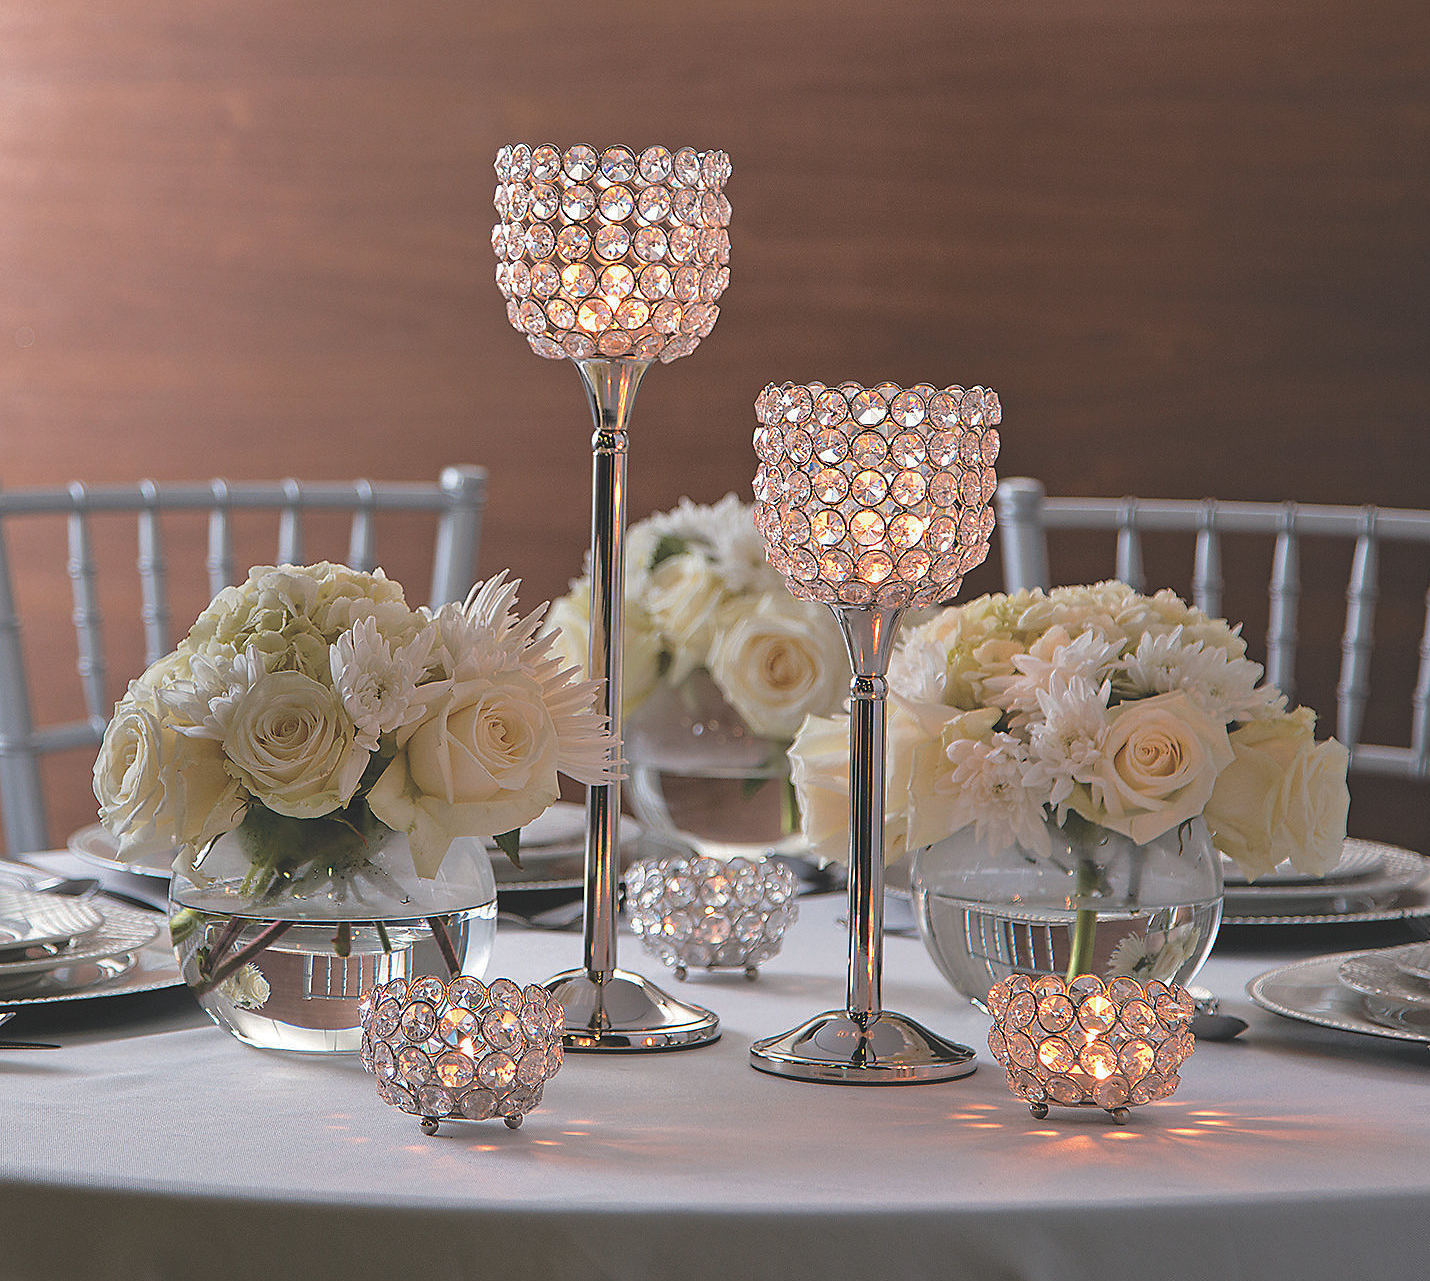 Bling wedding receptions Acrylic Crystal Bead Votive Candle Holders For A Wedding Dinner Table